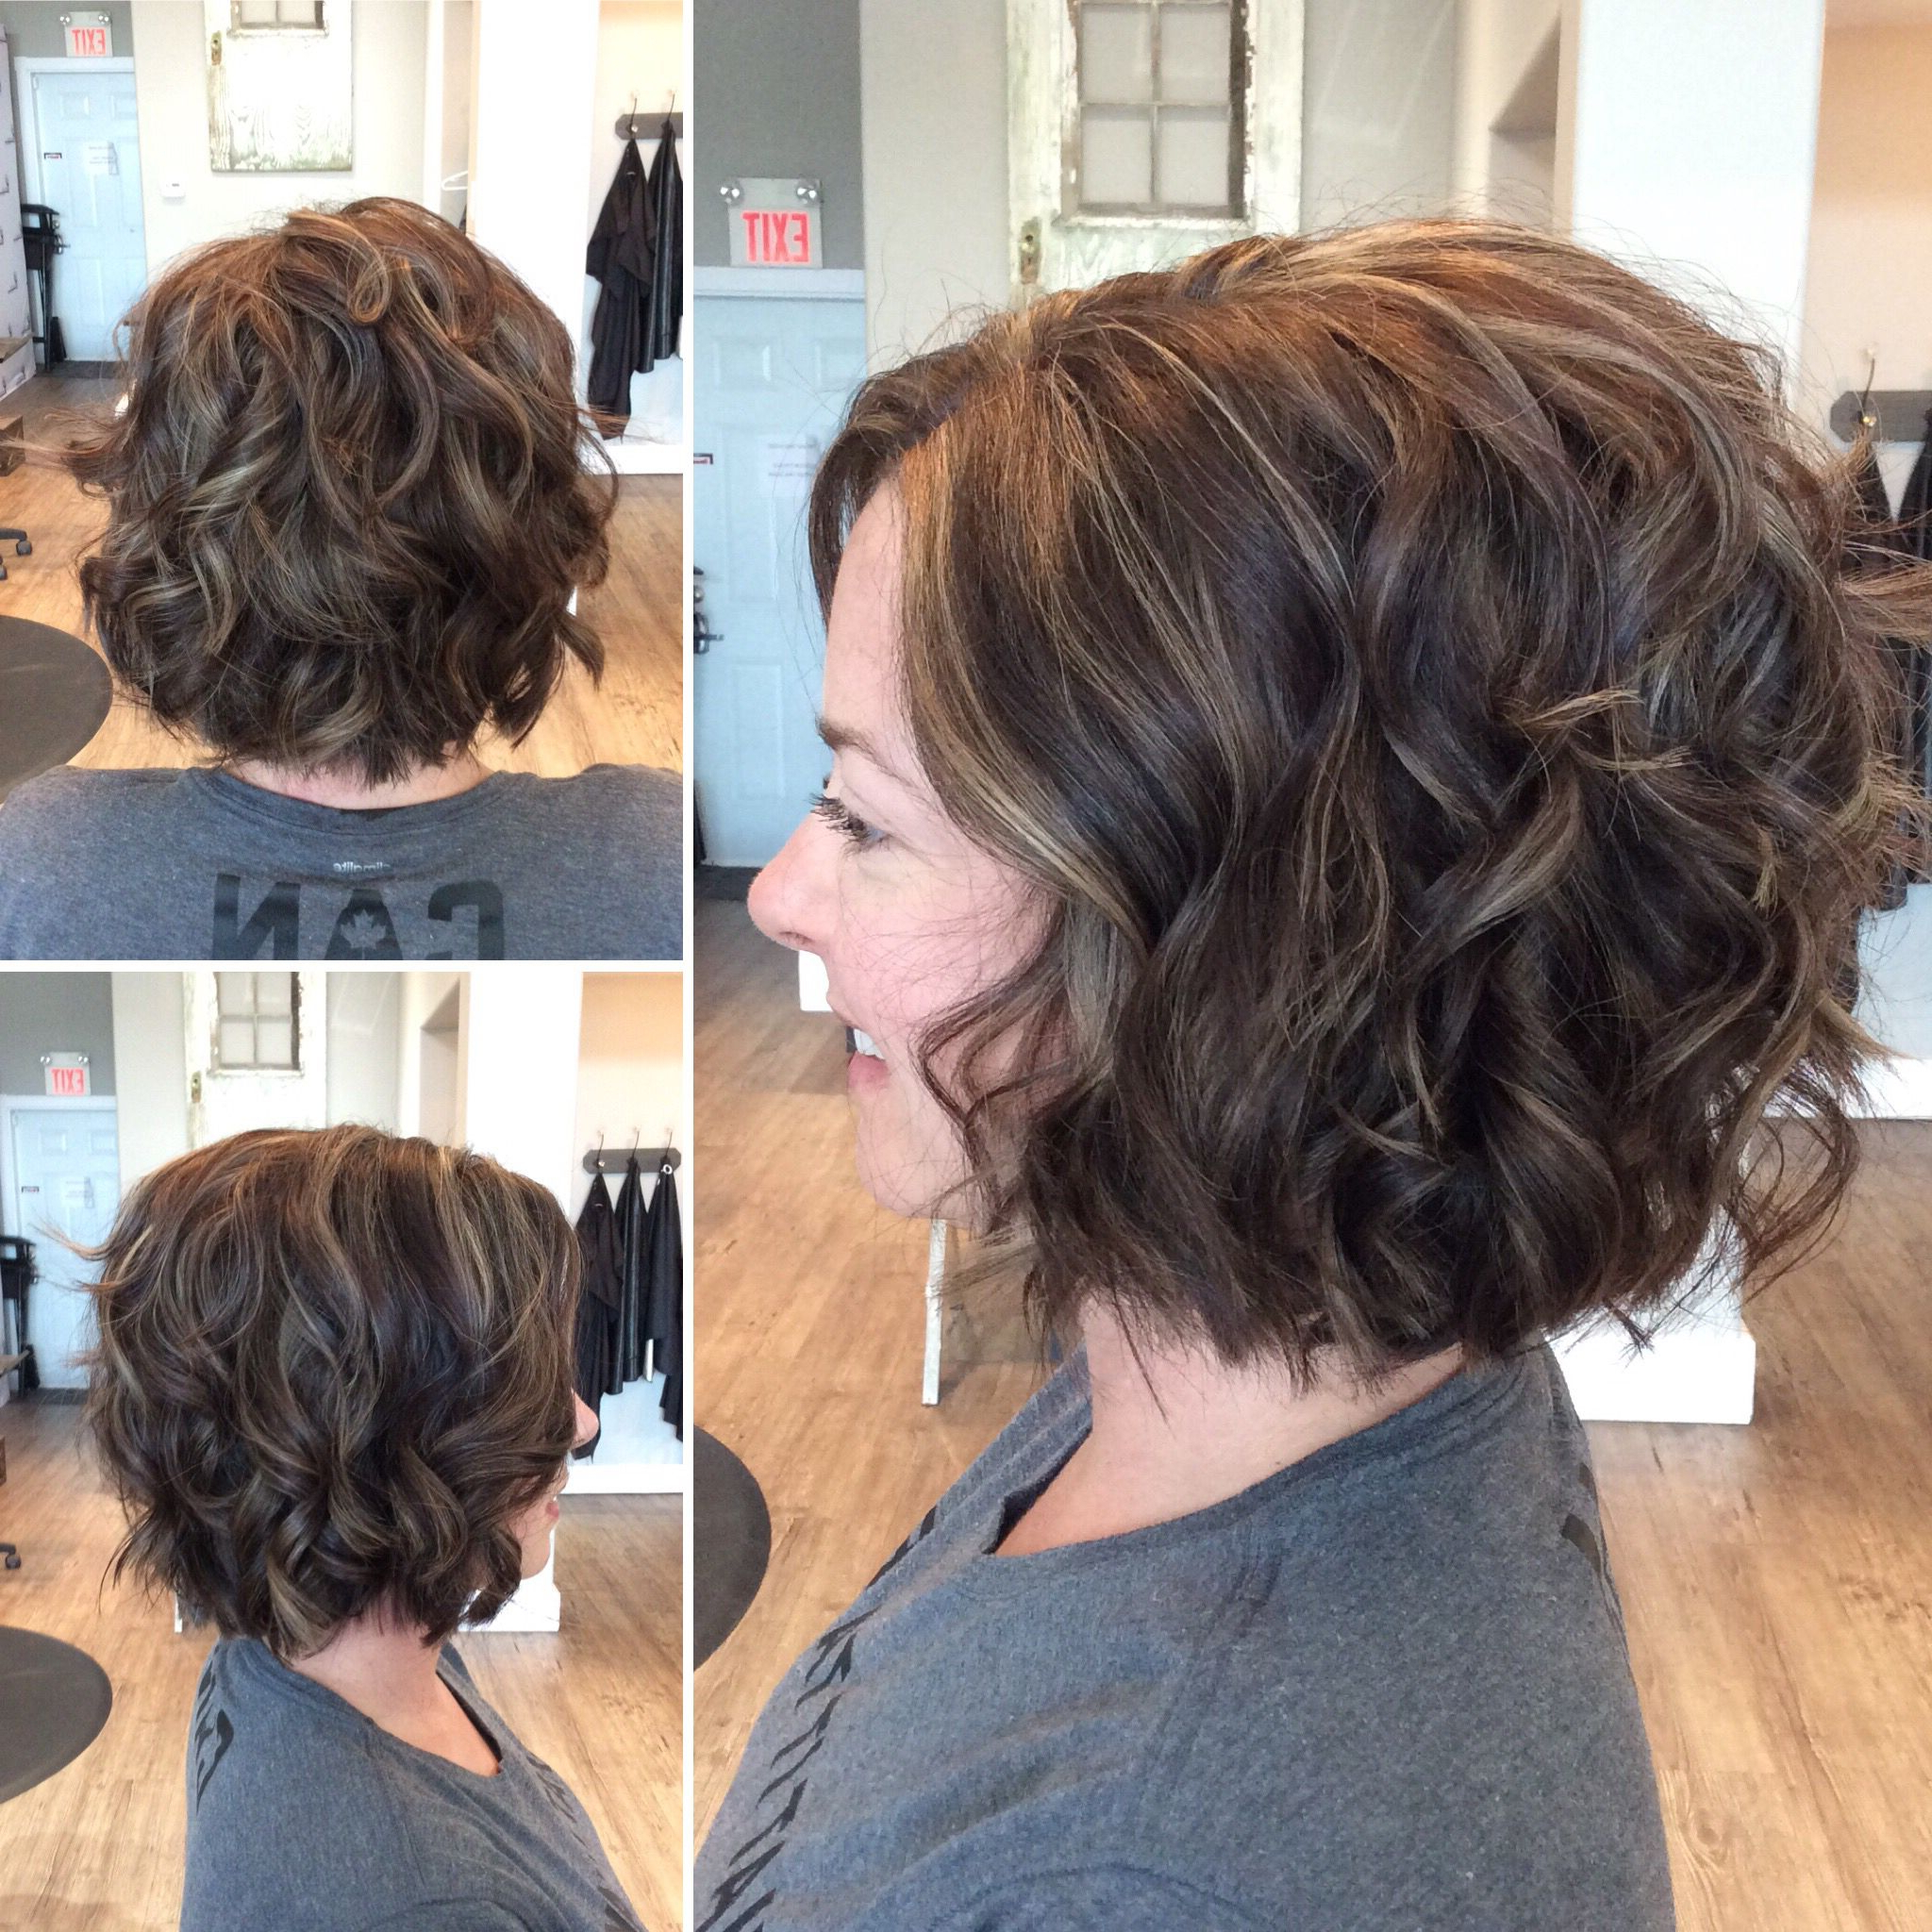 2018 Medium Length Curls Hairstyles With Caramel Highlights Pertaining To Brown Ash Bob With Caramel Highlights (View 14 of 20)